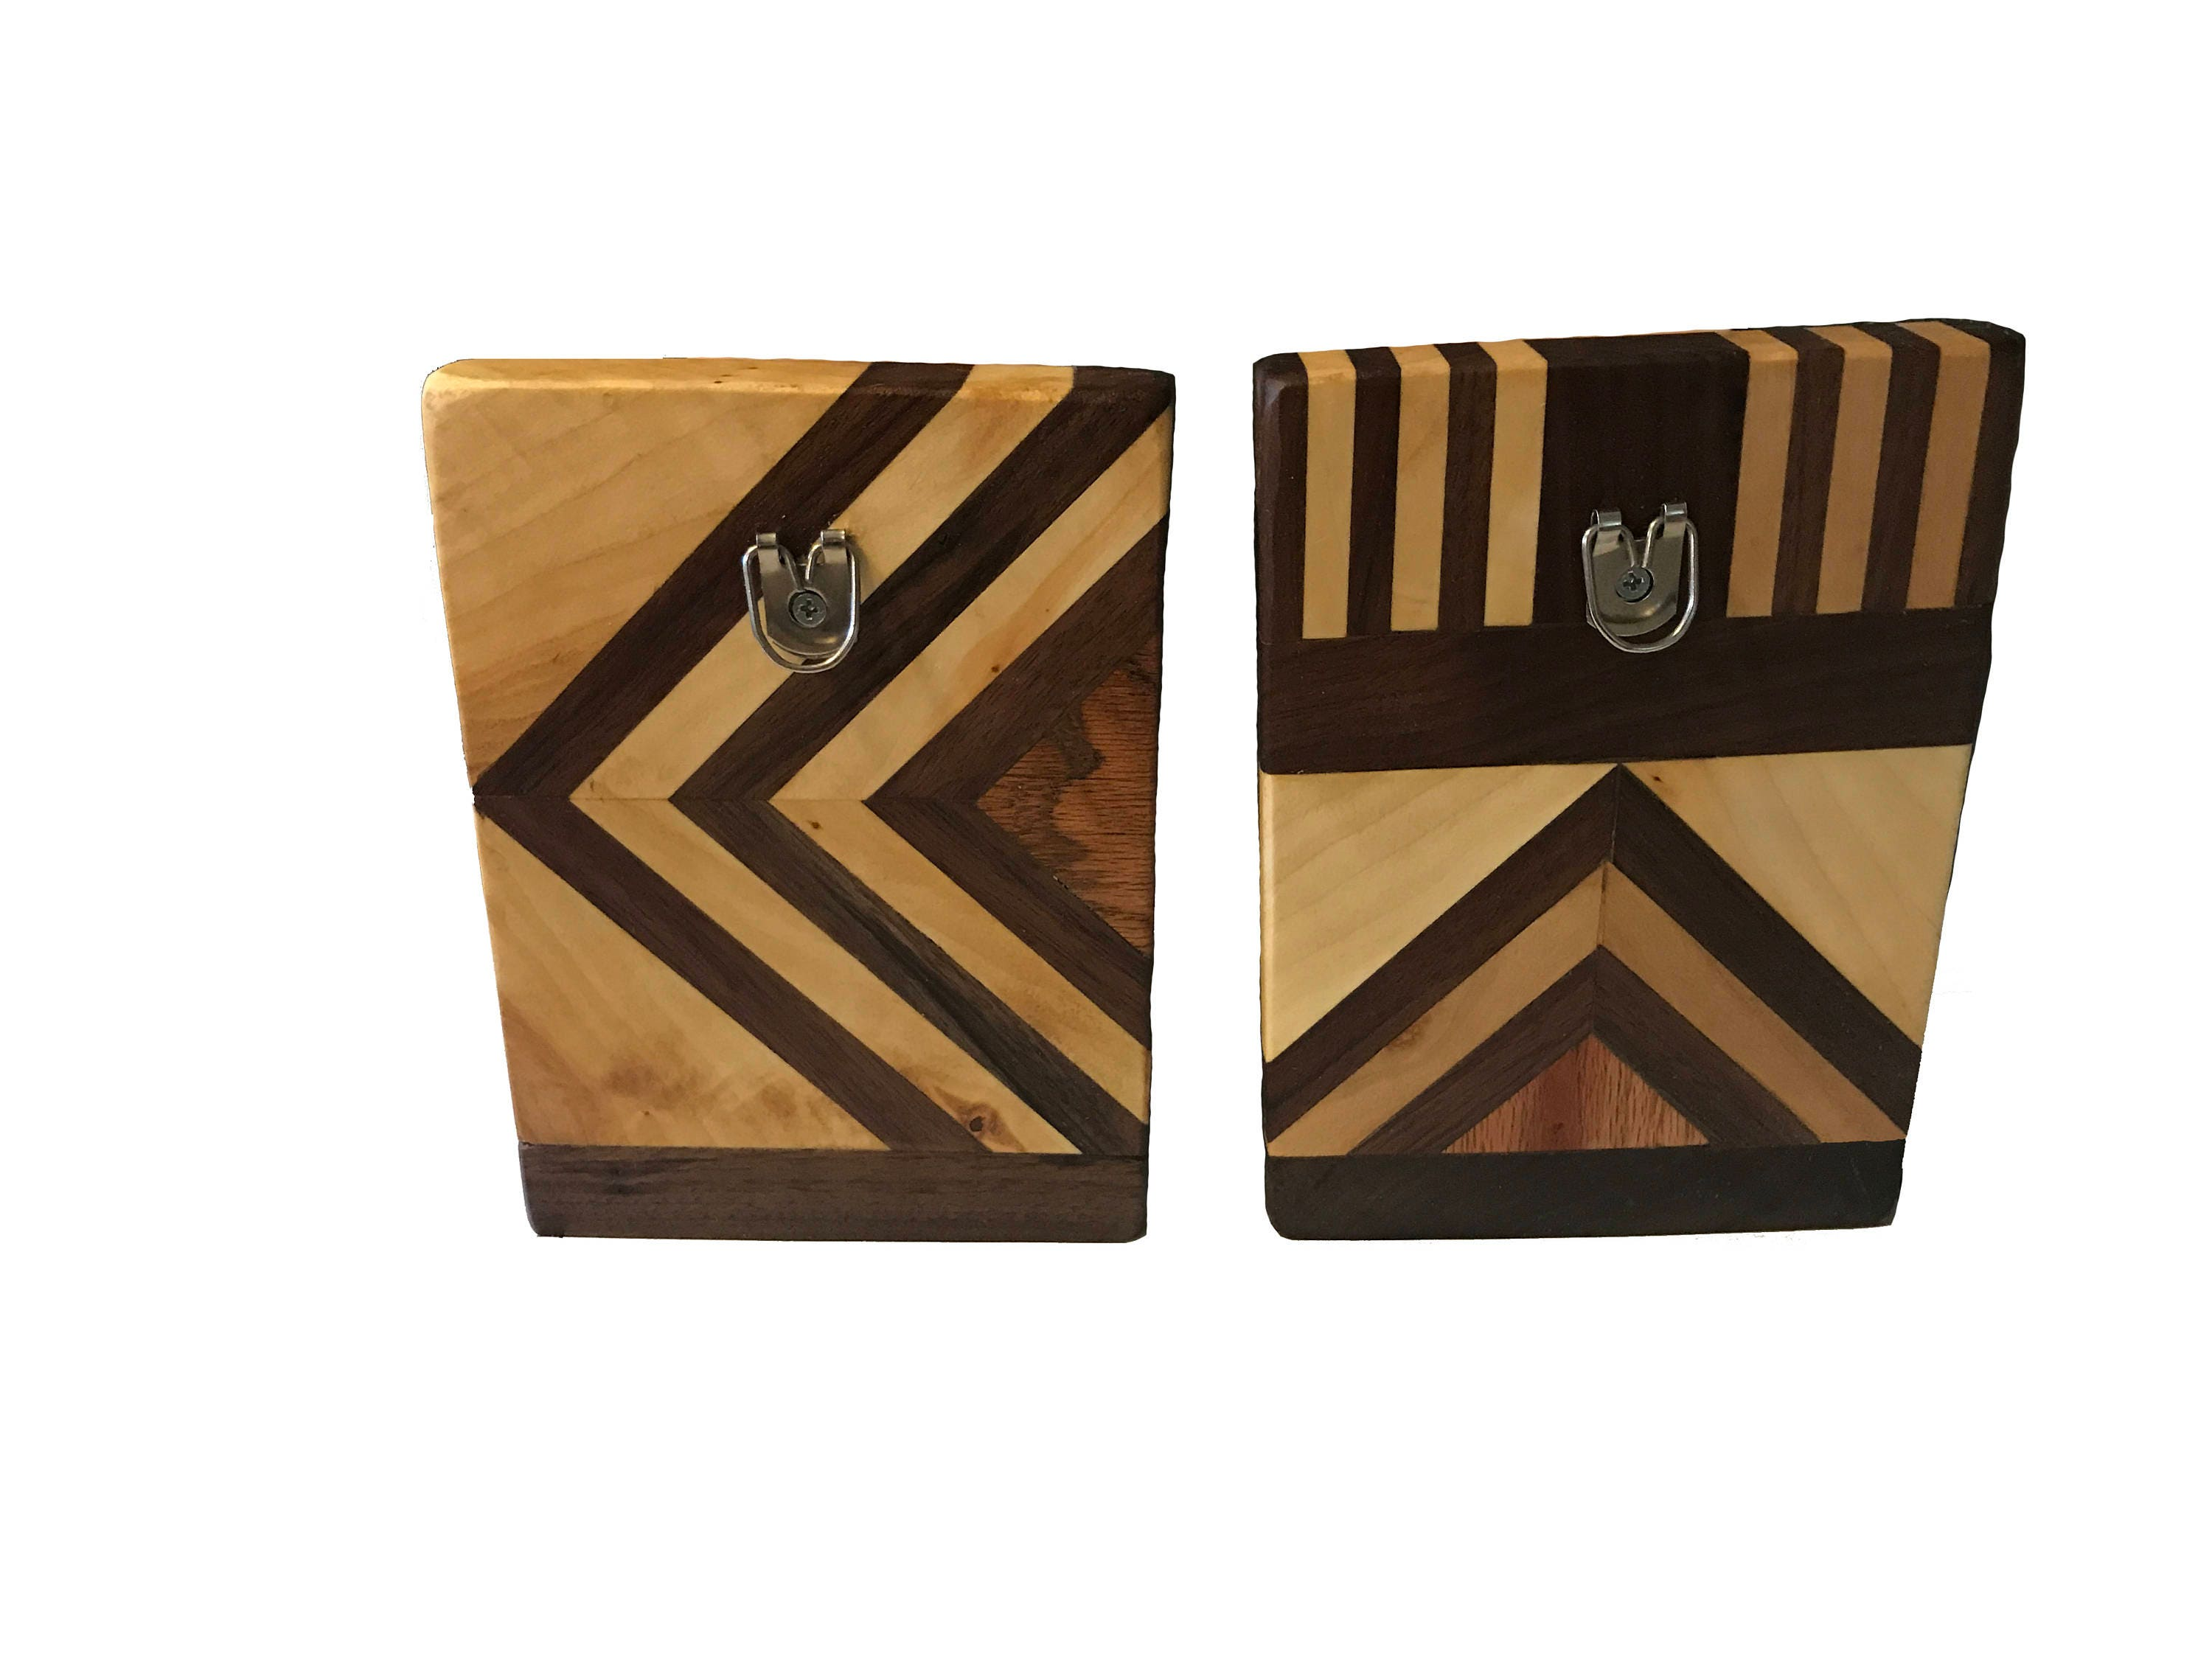 Geometric wood candle wall display holder rustic wood wall sconce geometric wood candle wall display holder rustic wood wall sconce candle holder amipublicfo Images